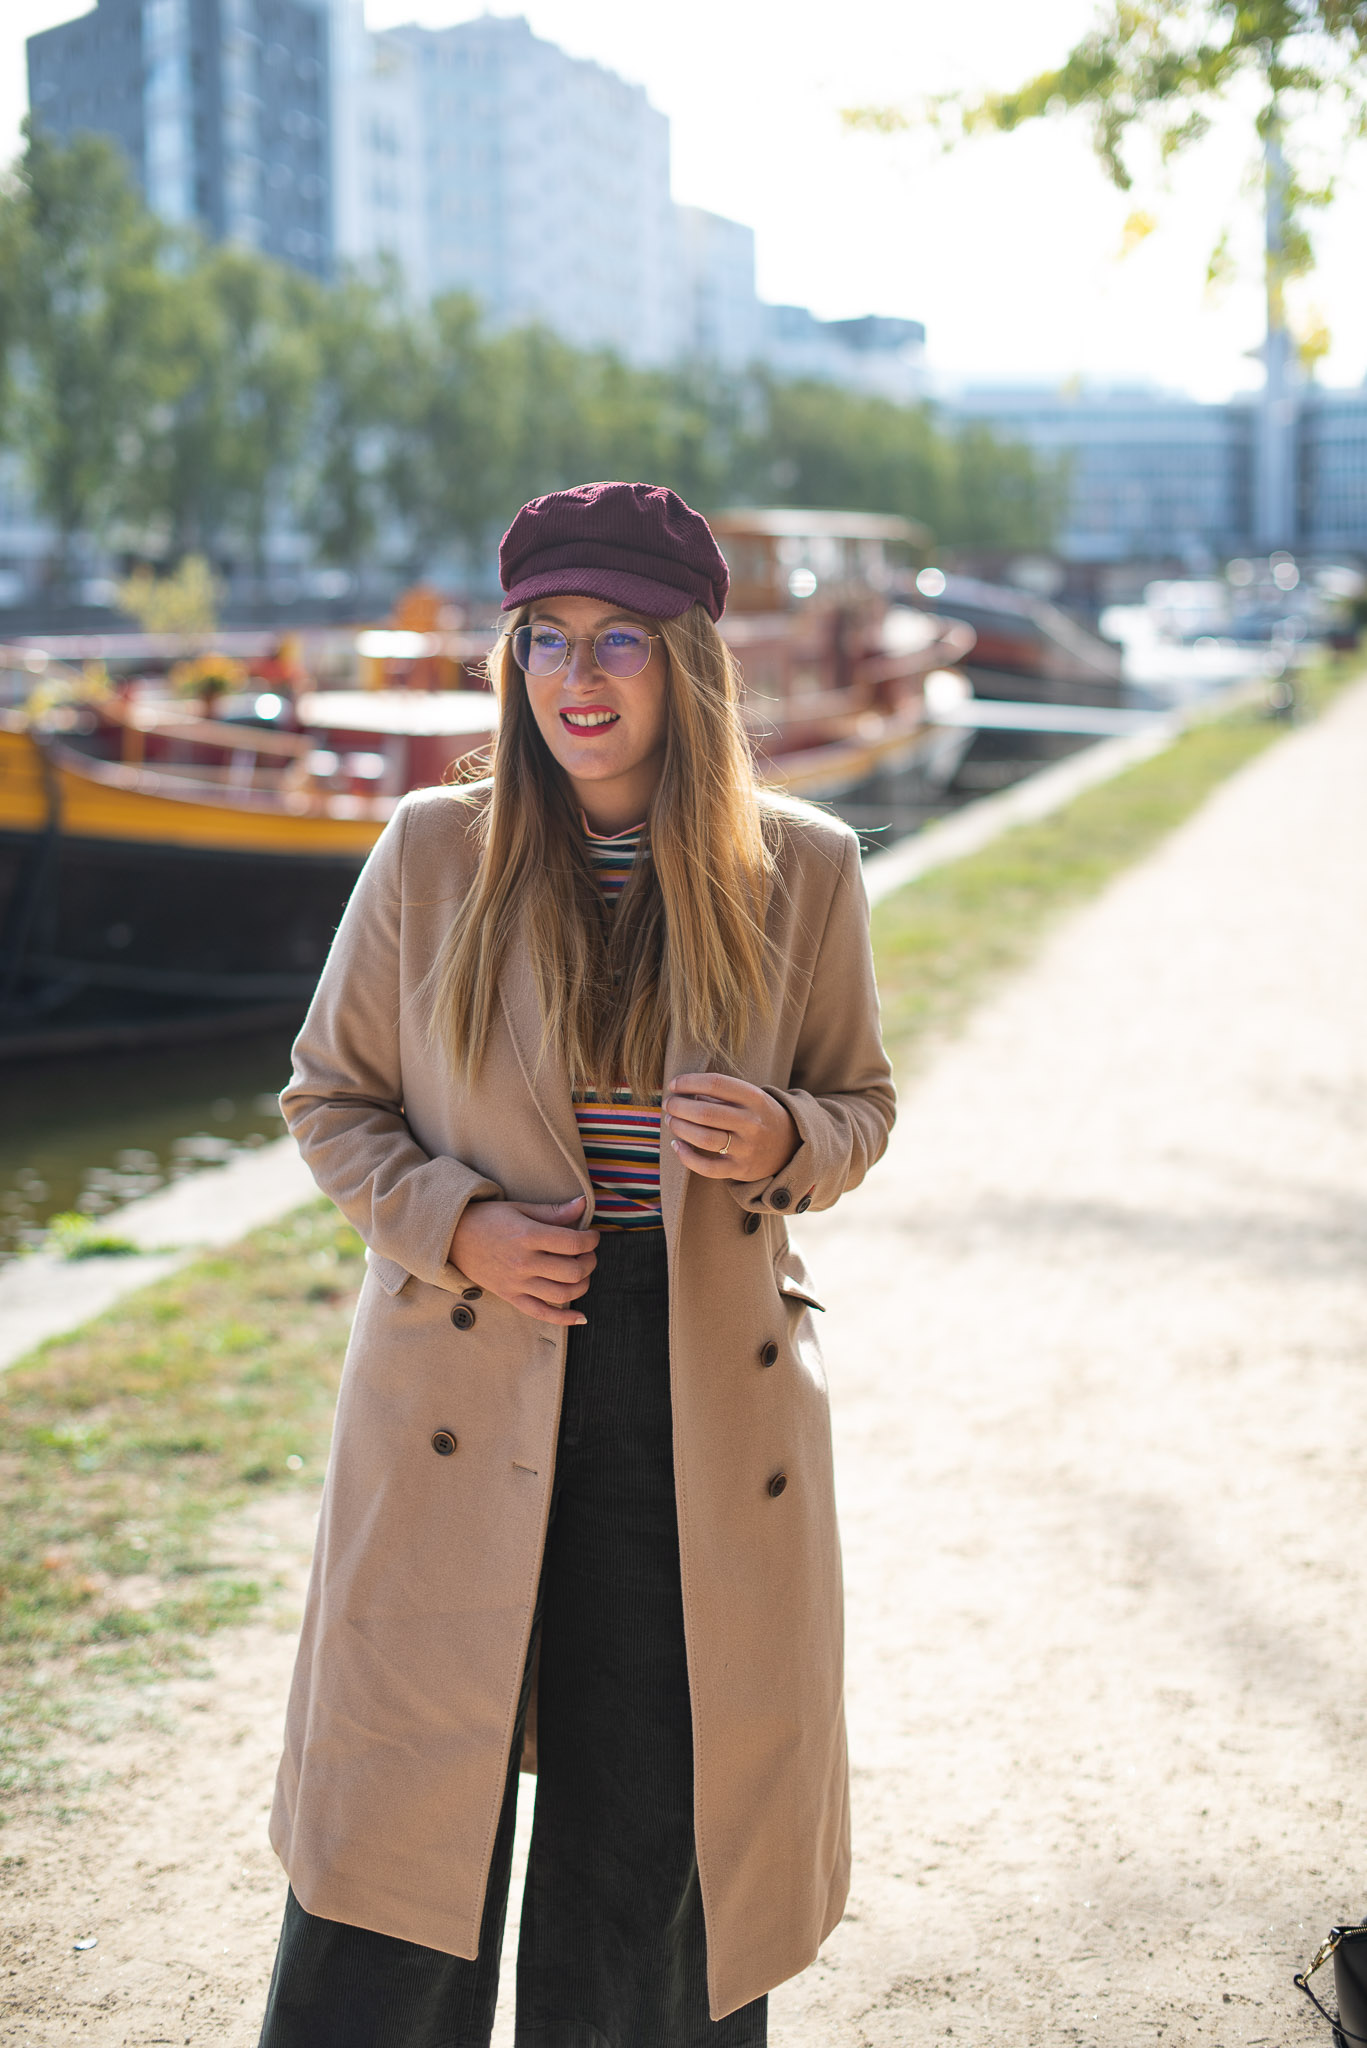 Le manteau long